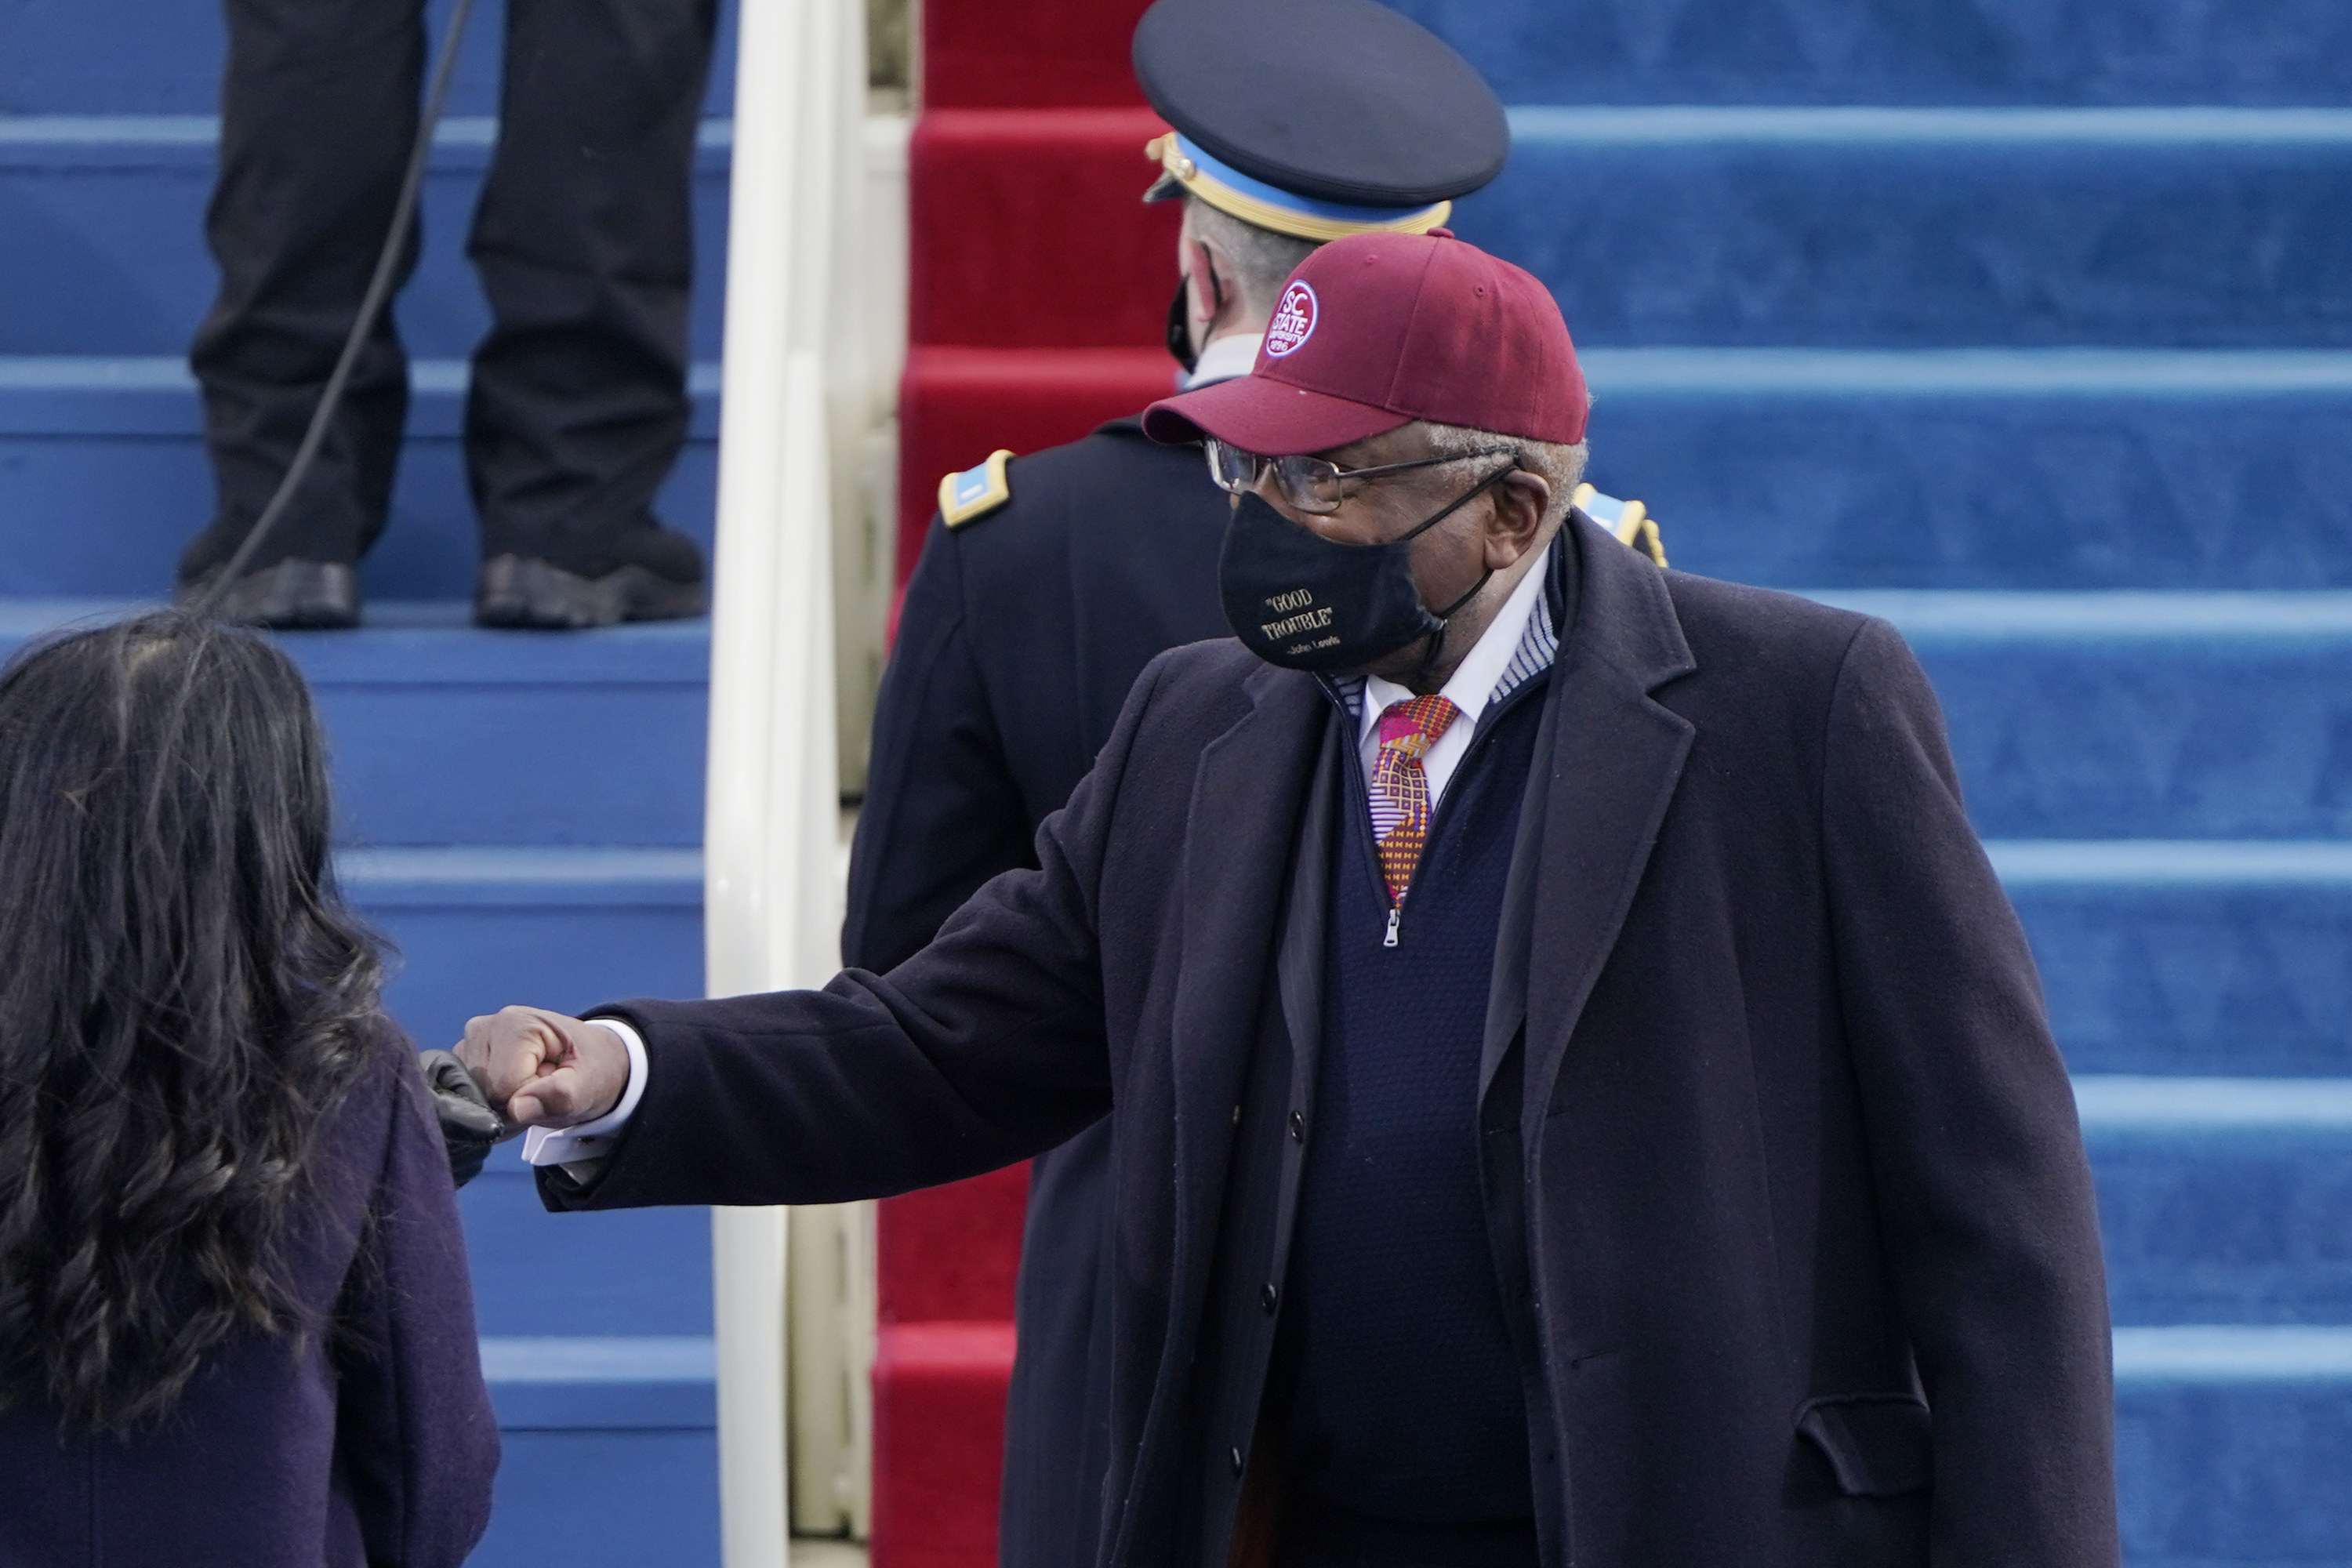 """House Majority Whip James Clyburn wearing a black mask with """"Good Trouble"""" printed on it at the inauguration."""